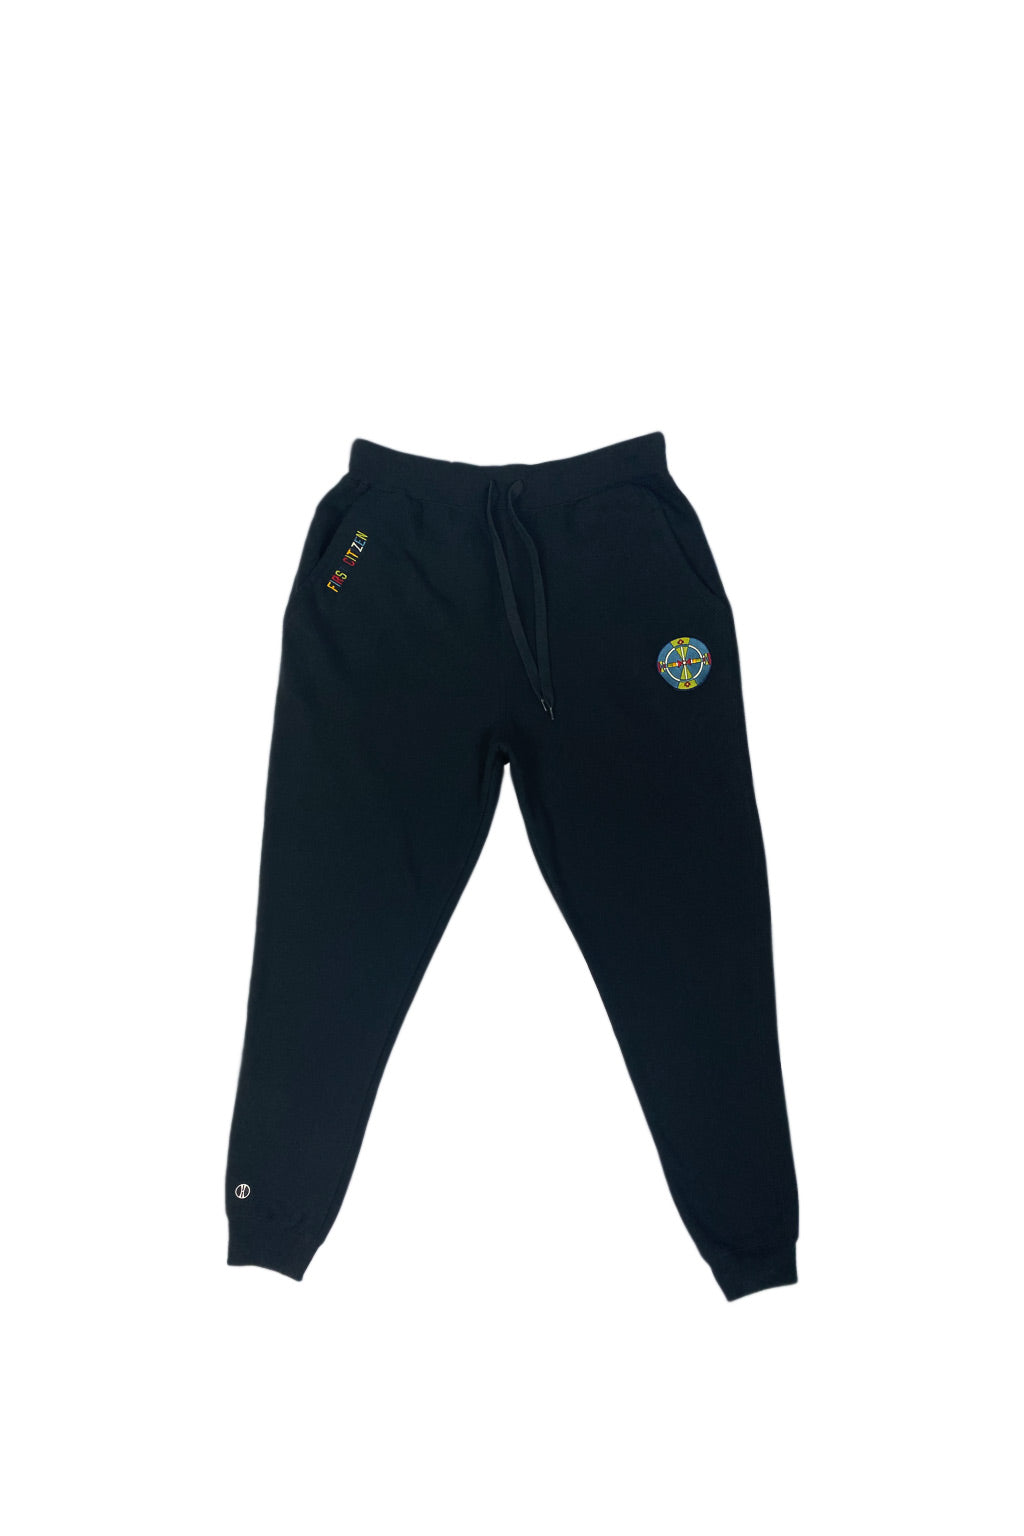 Geo Shield Sweatpants